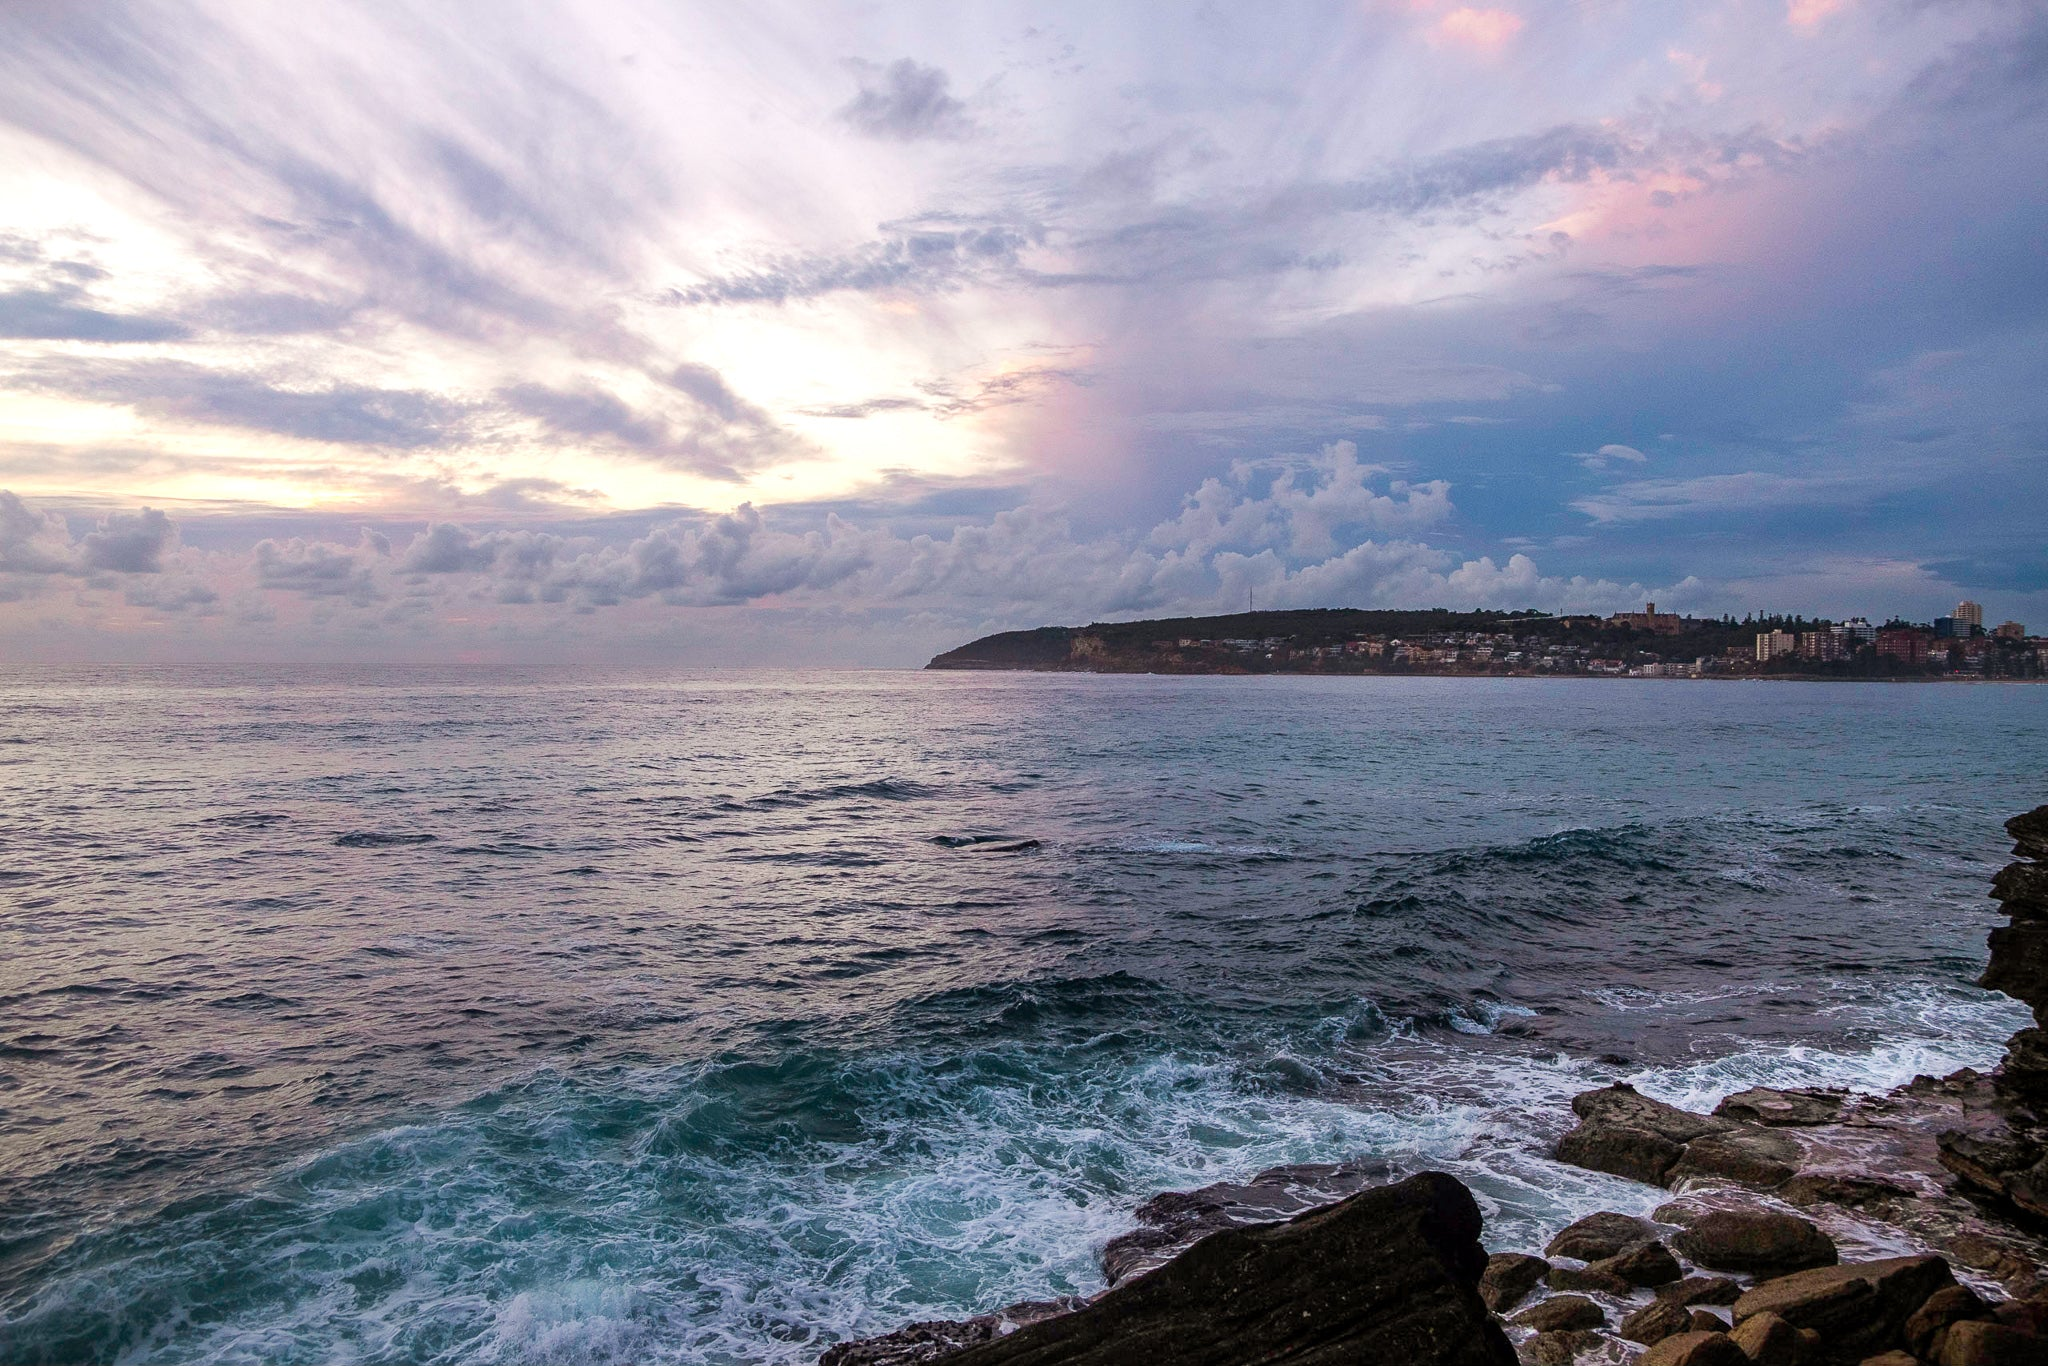 Sunrise photo from the 1st March 2019 at Queenscliff headland in Sydney